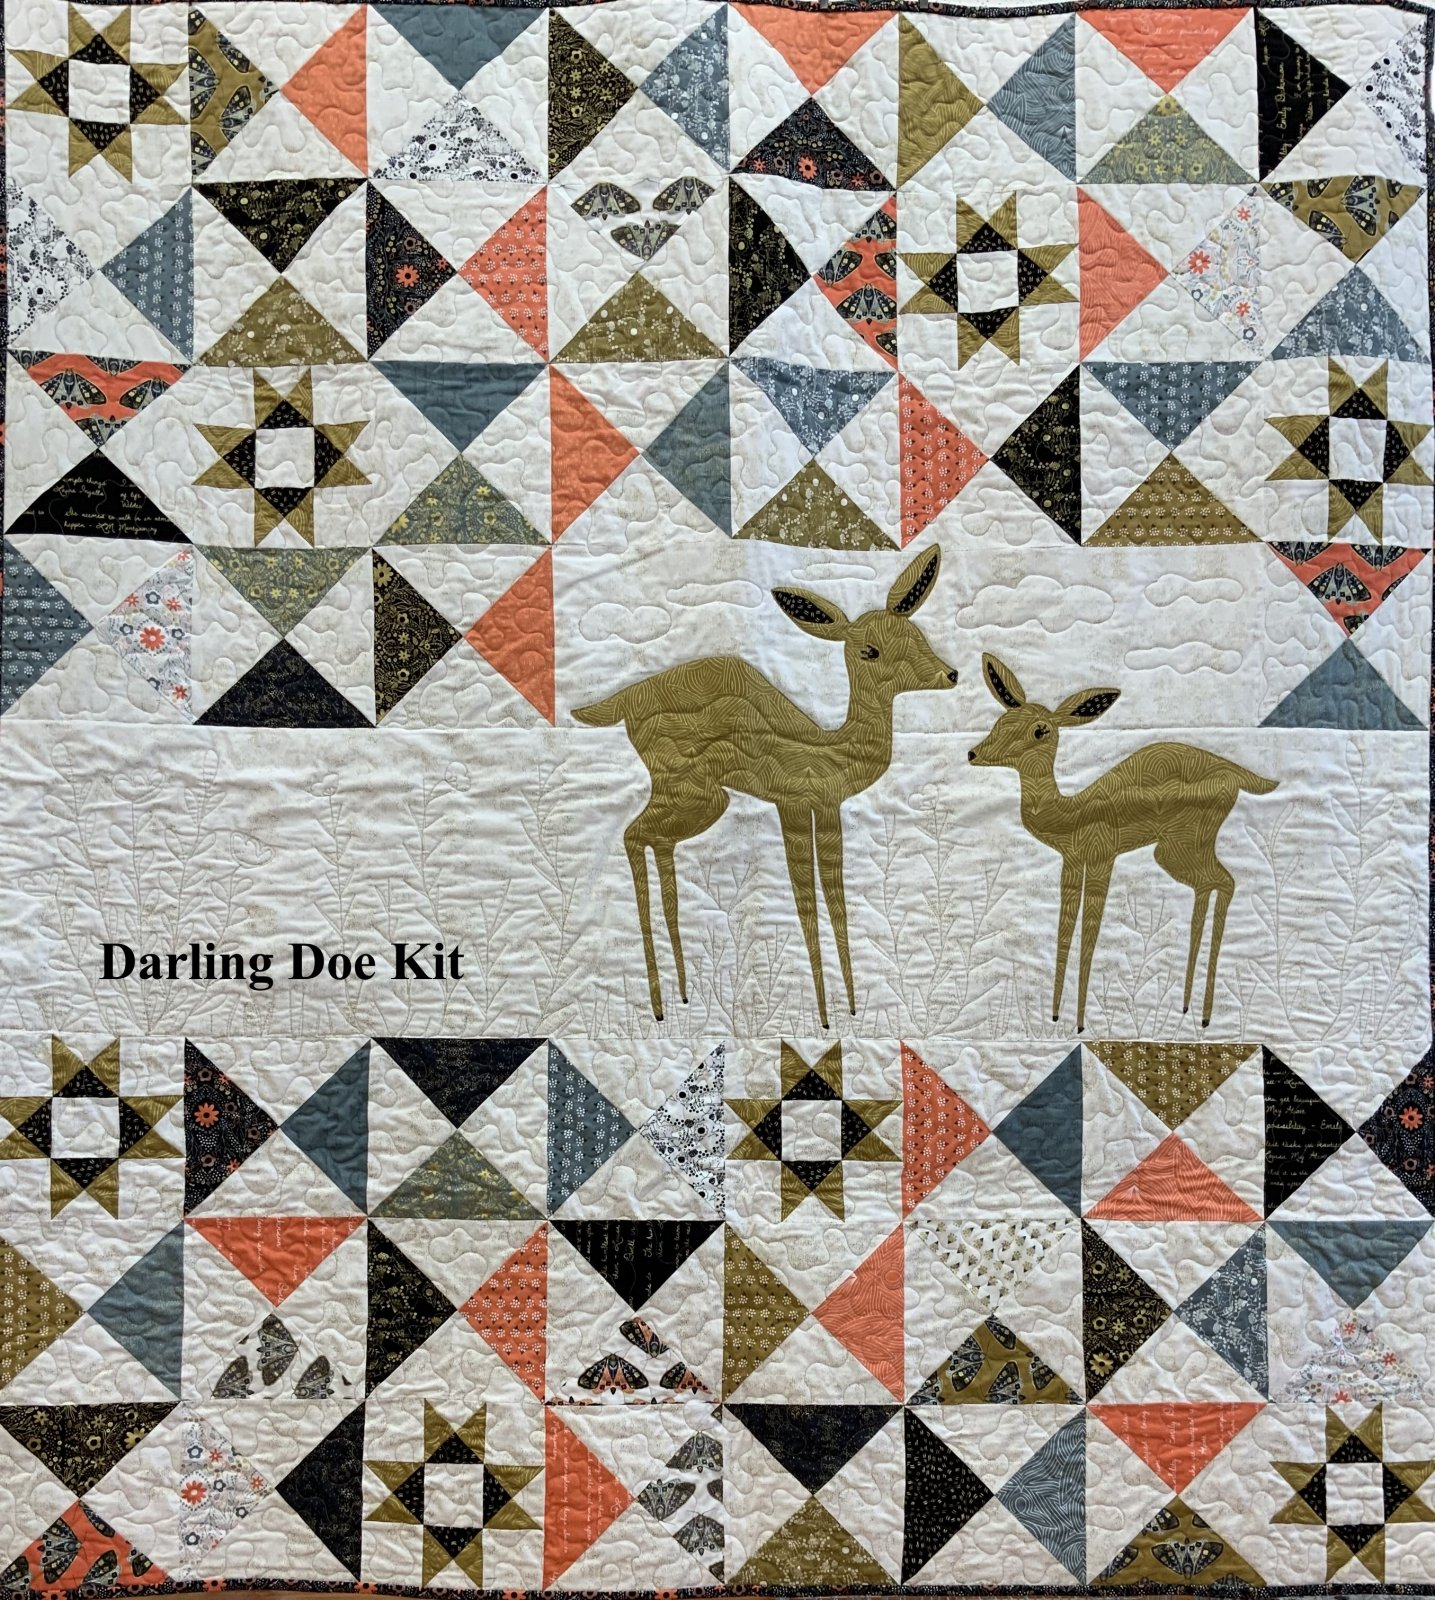 Darling Doe Quilt Kit by Old South Fabrics